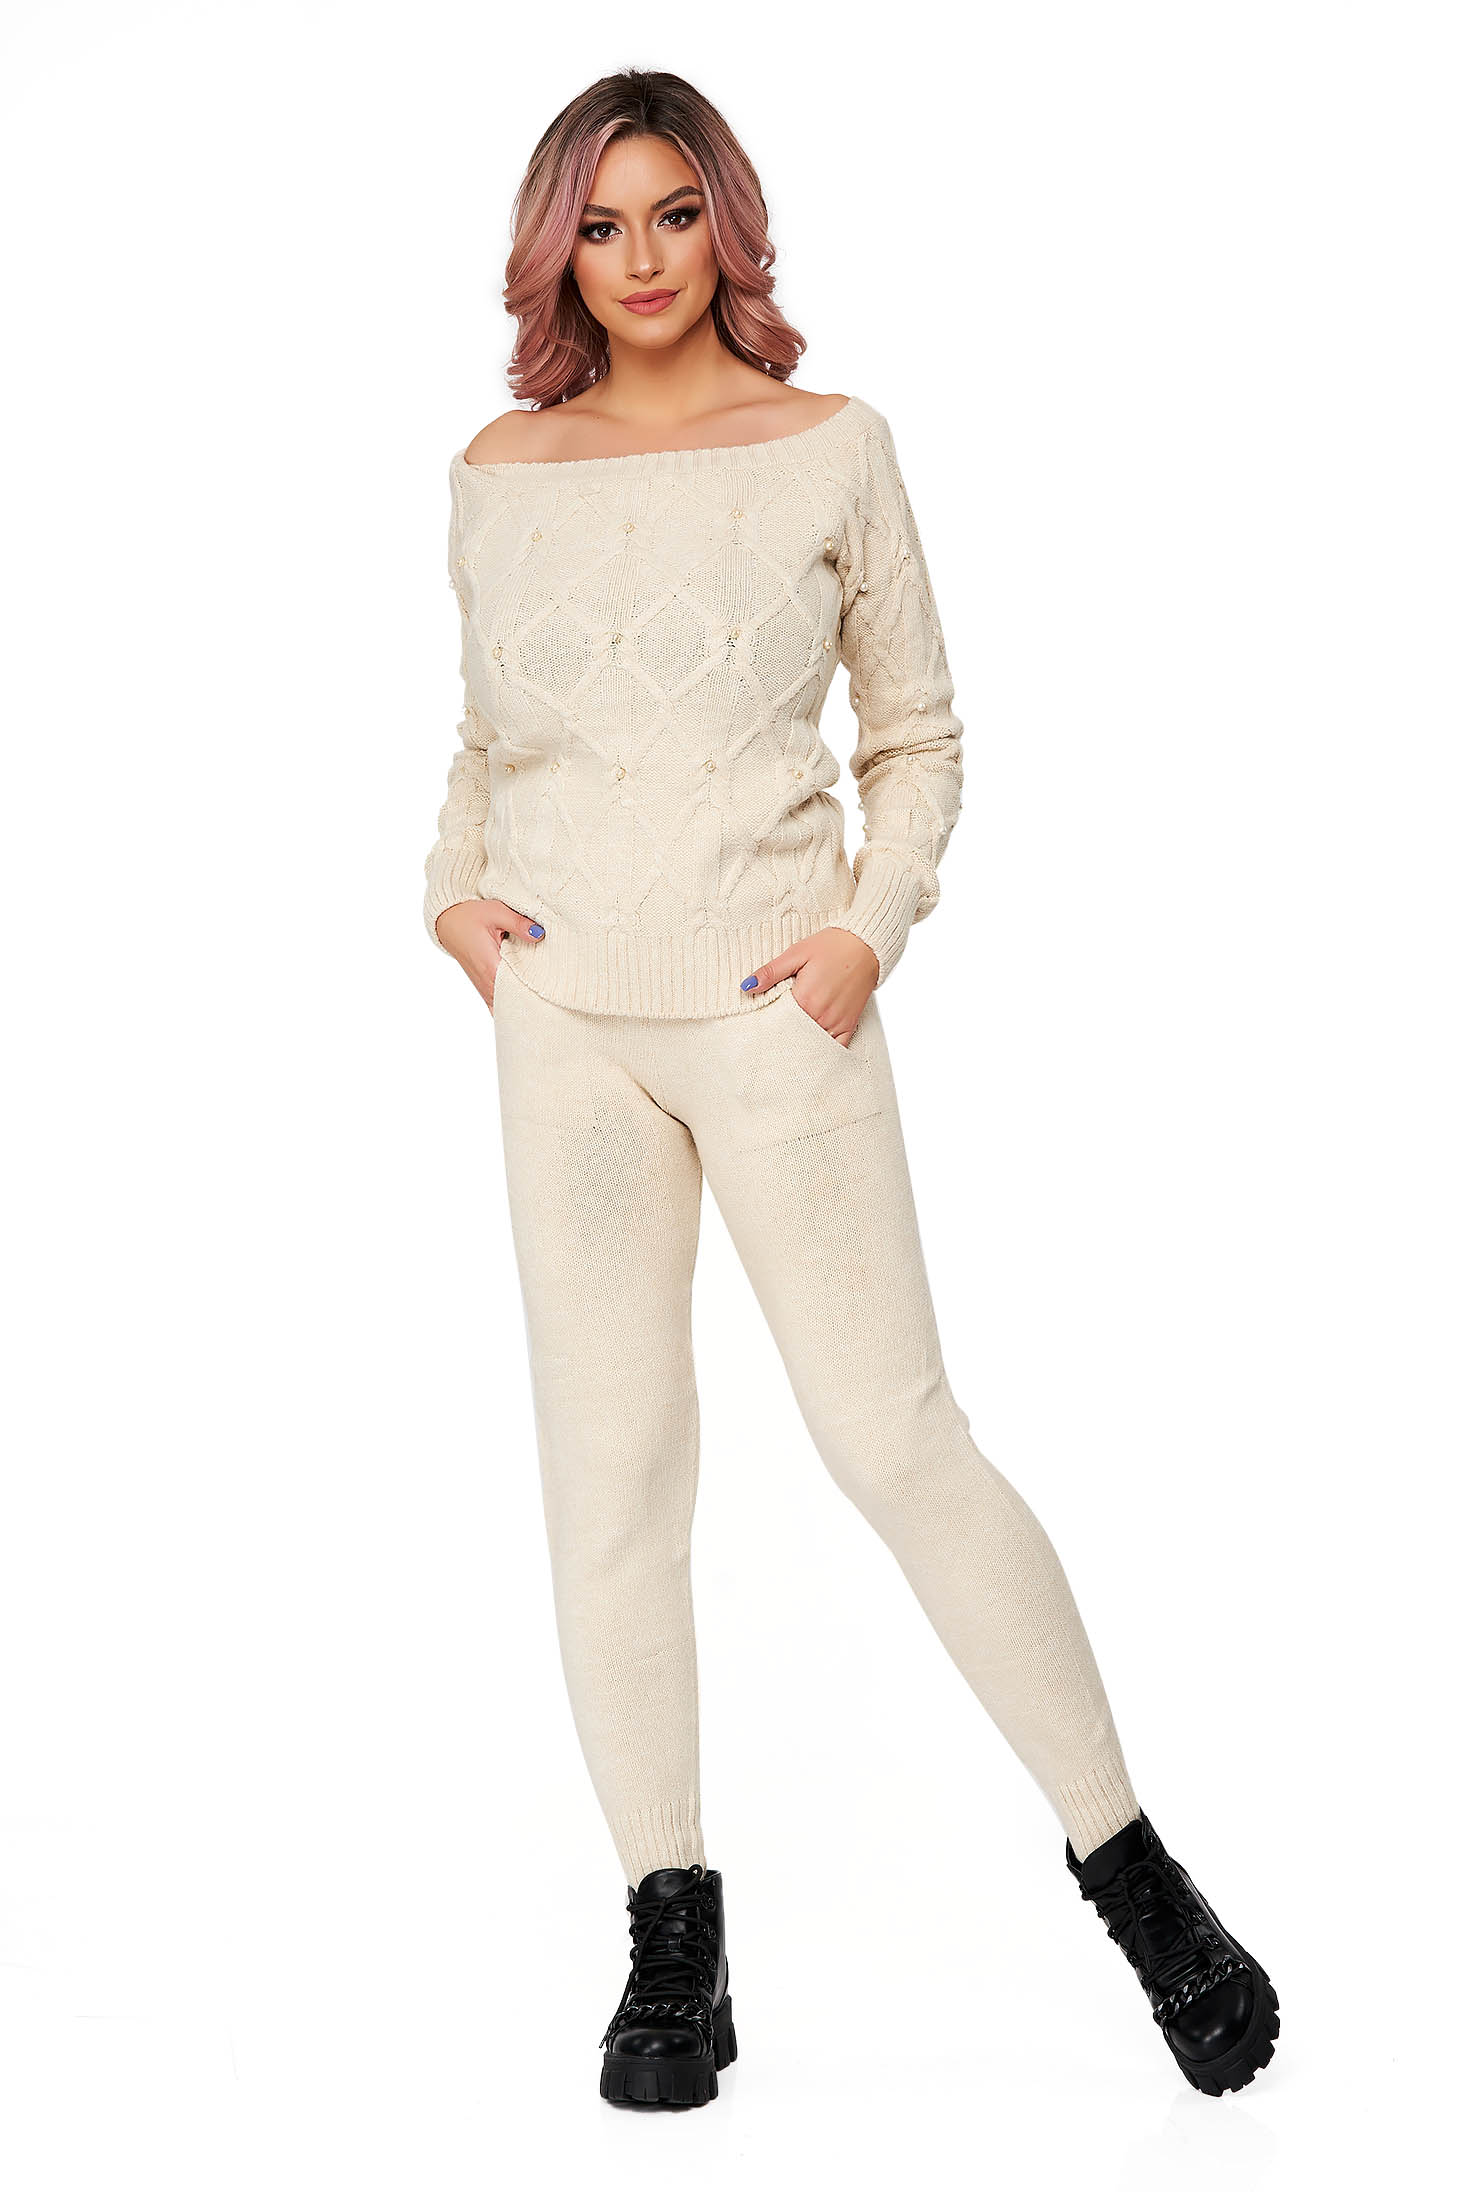 Cream sport 2 pieces from two pieces flared knitted fabric